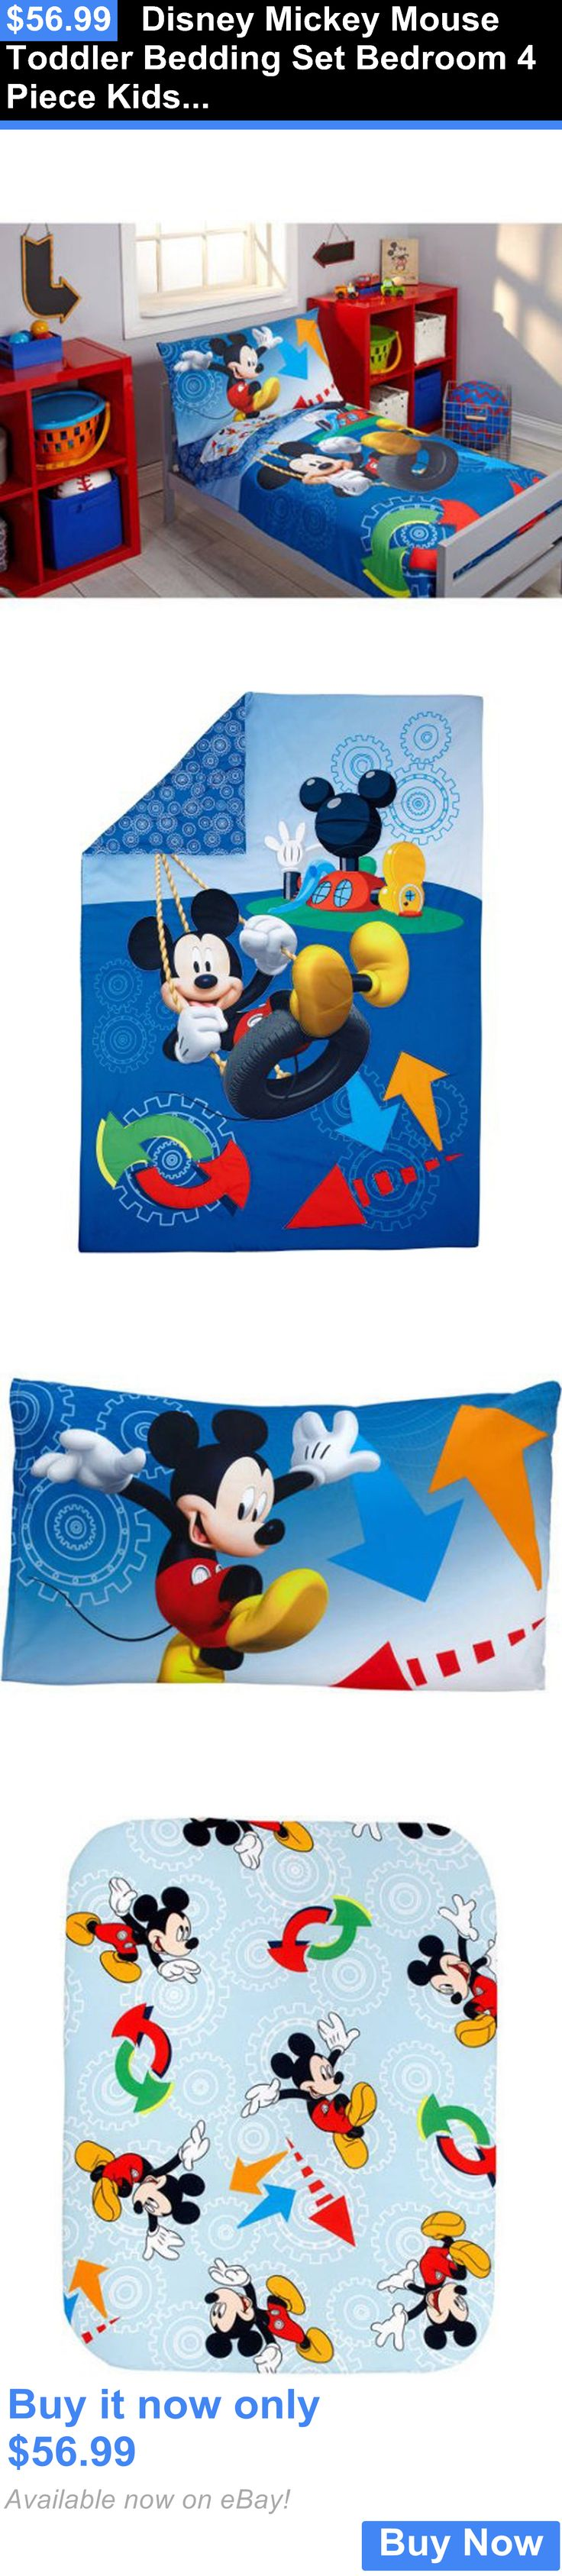 Kids at Home: Disney Mickey Mouse Toddler Bedding Set Bedroom 4 Piece Kids Room Boy Gift Decor BUY IT NOW ONLY: $56.99